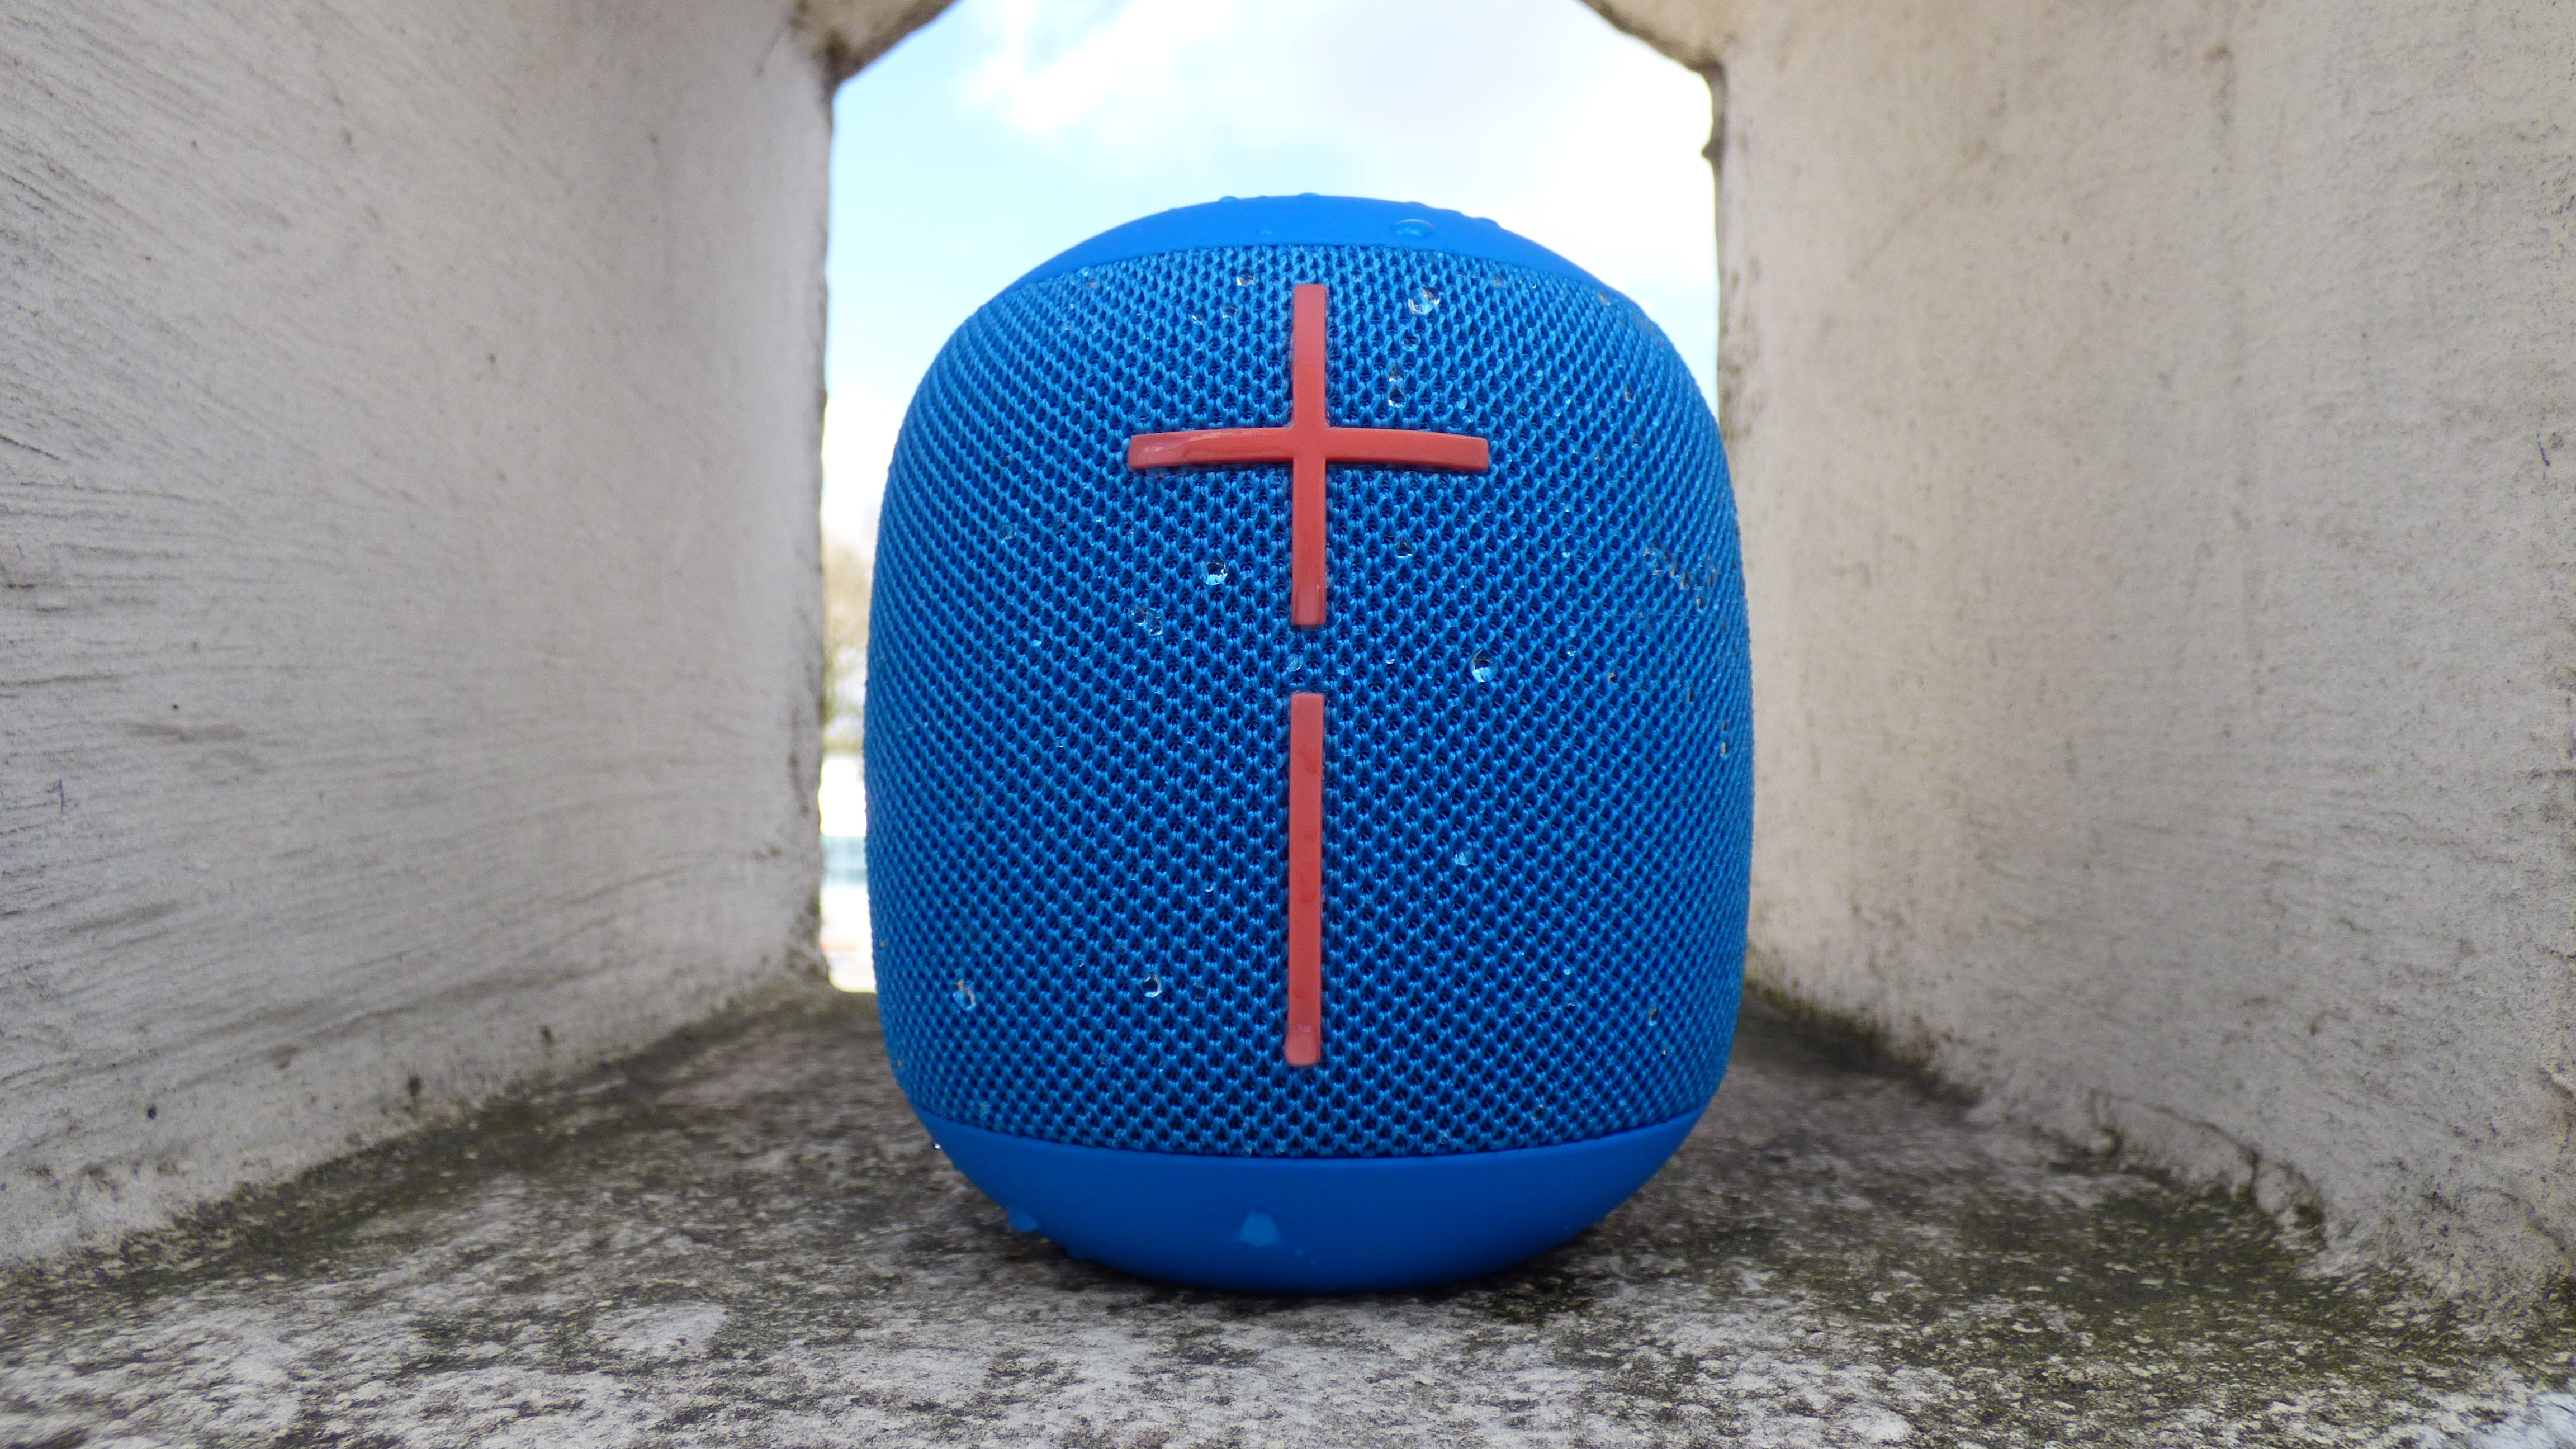 UE Wonderboom Review | Trusted Reviews